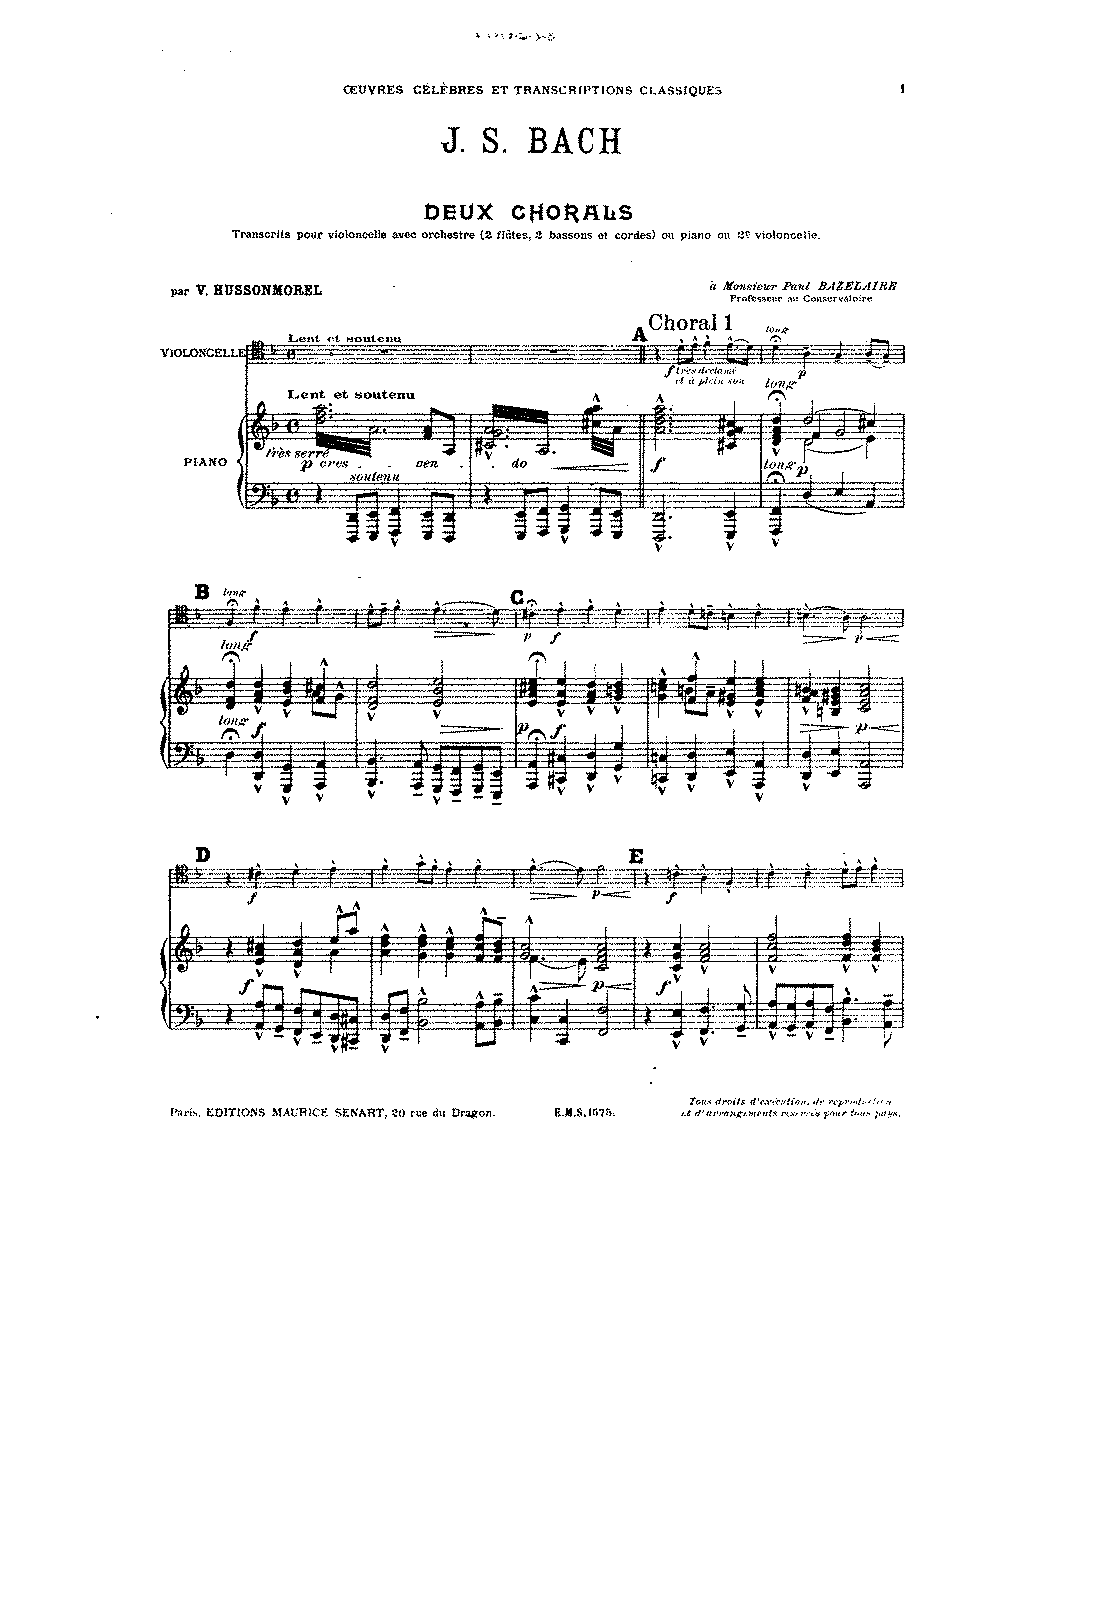 PMLP142603-Bach - 2 Chorals for Cello and Piano (Hussonmorel) score.pdf